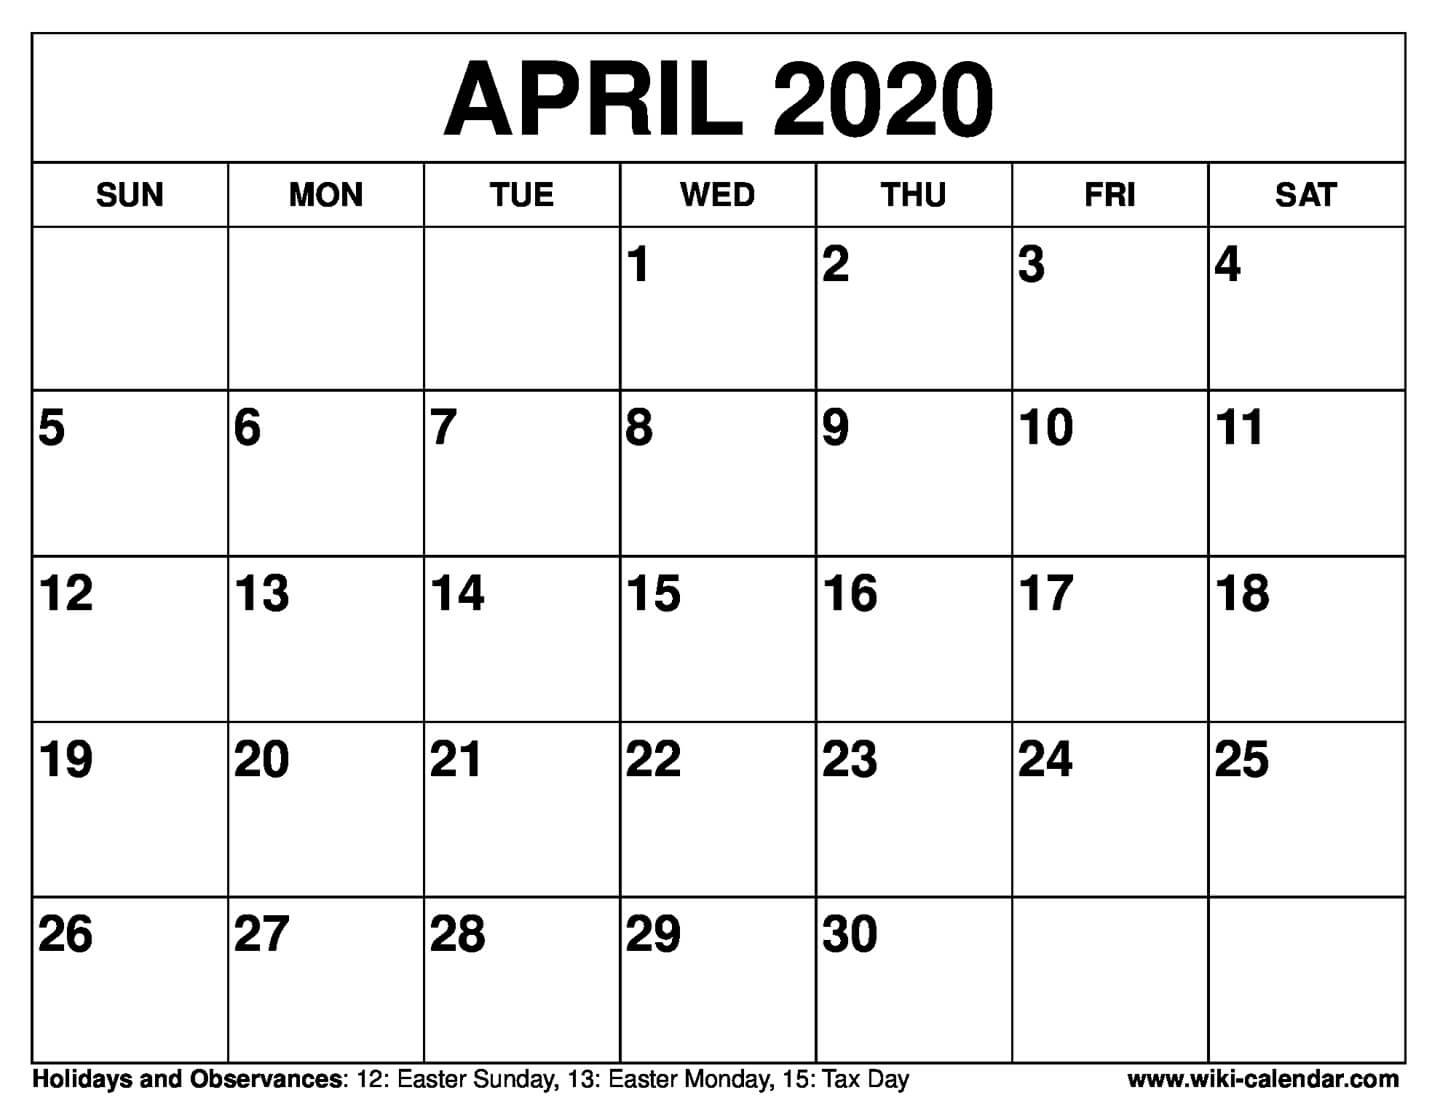 Free Printable April 2020 Calendars I Need A Calendar I Can Edit And Print Out Free